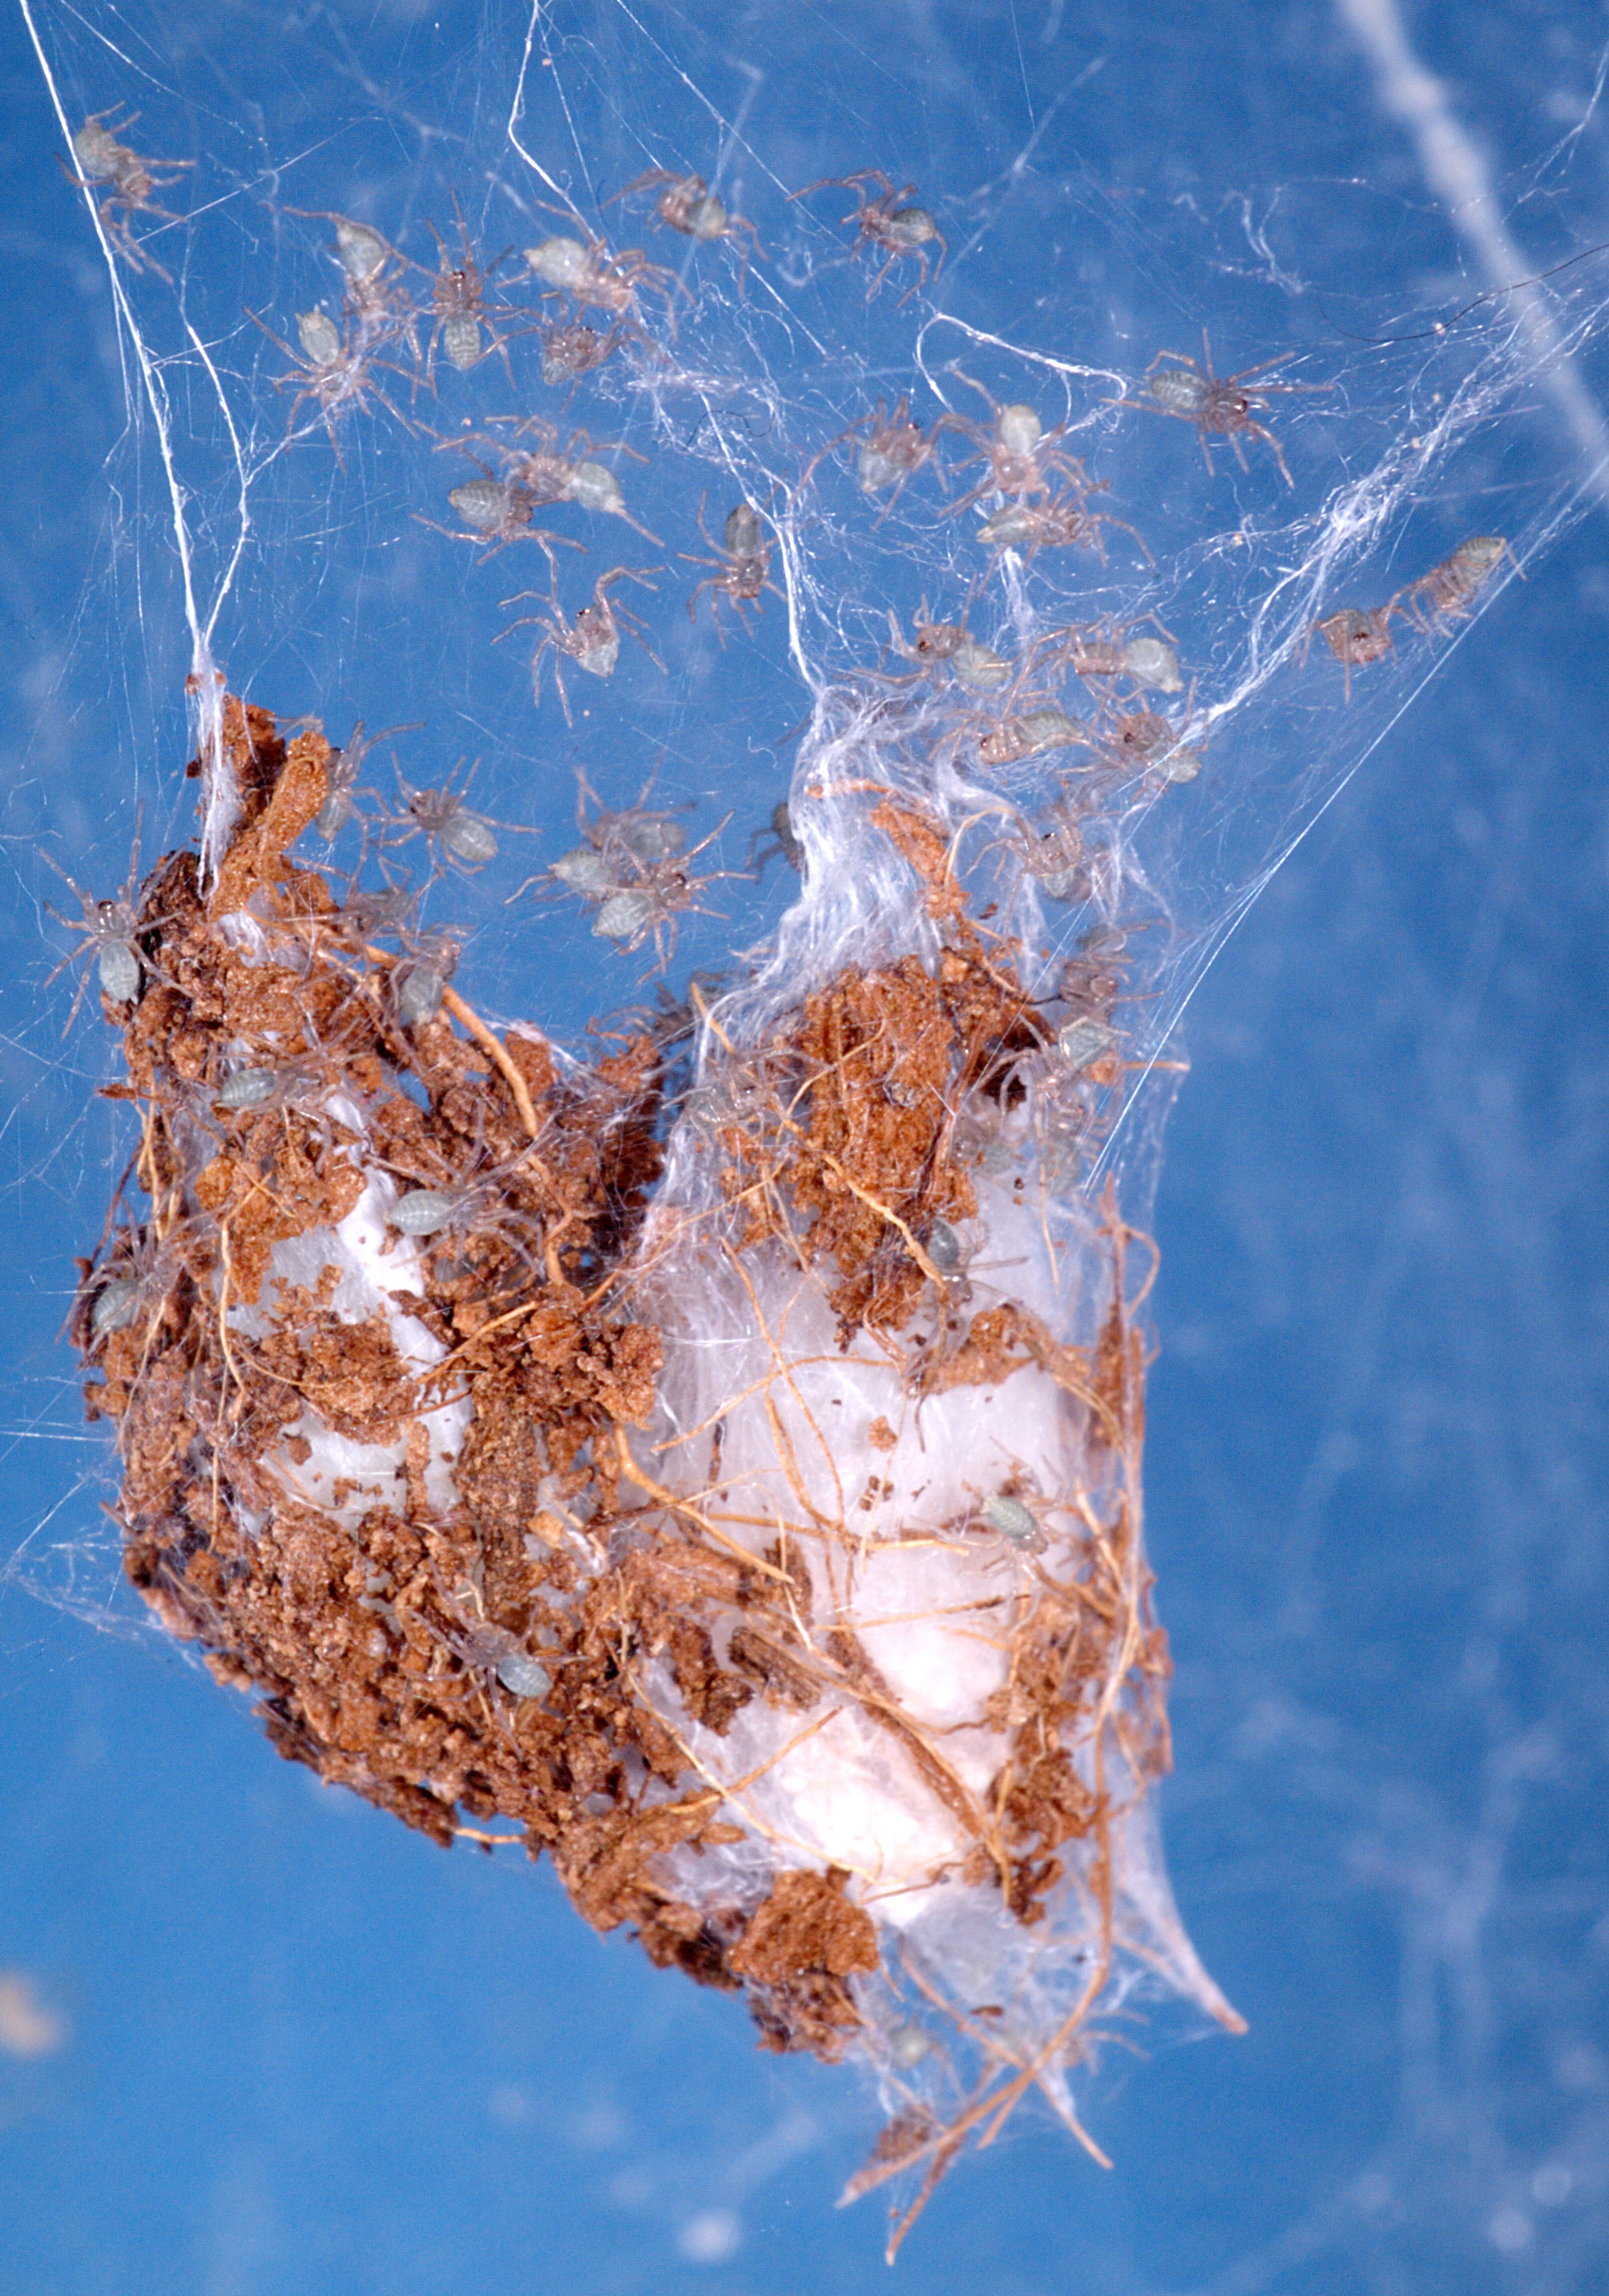 American house spider egg sac - photo#46